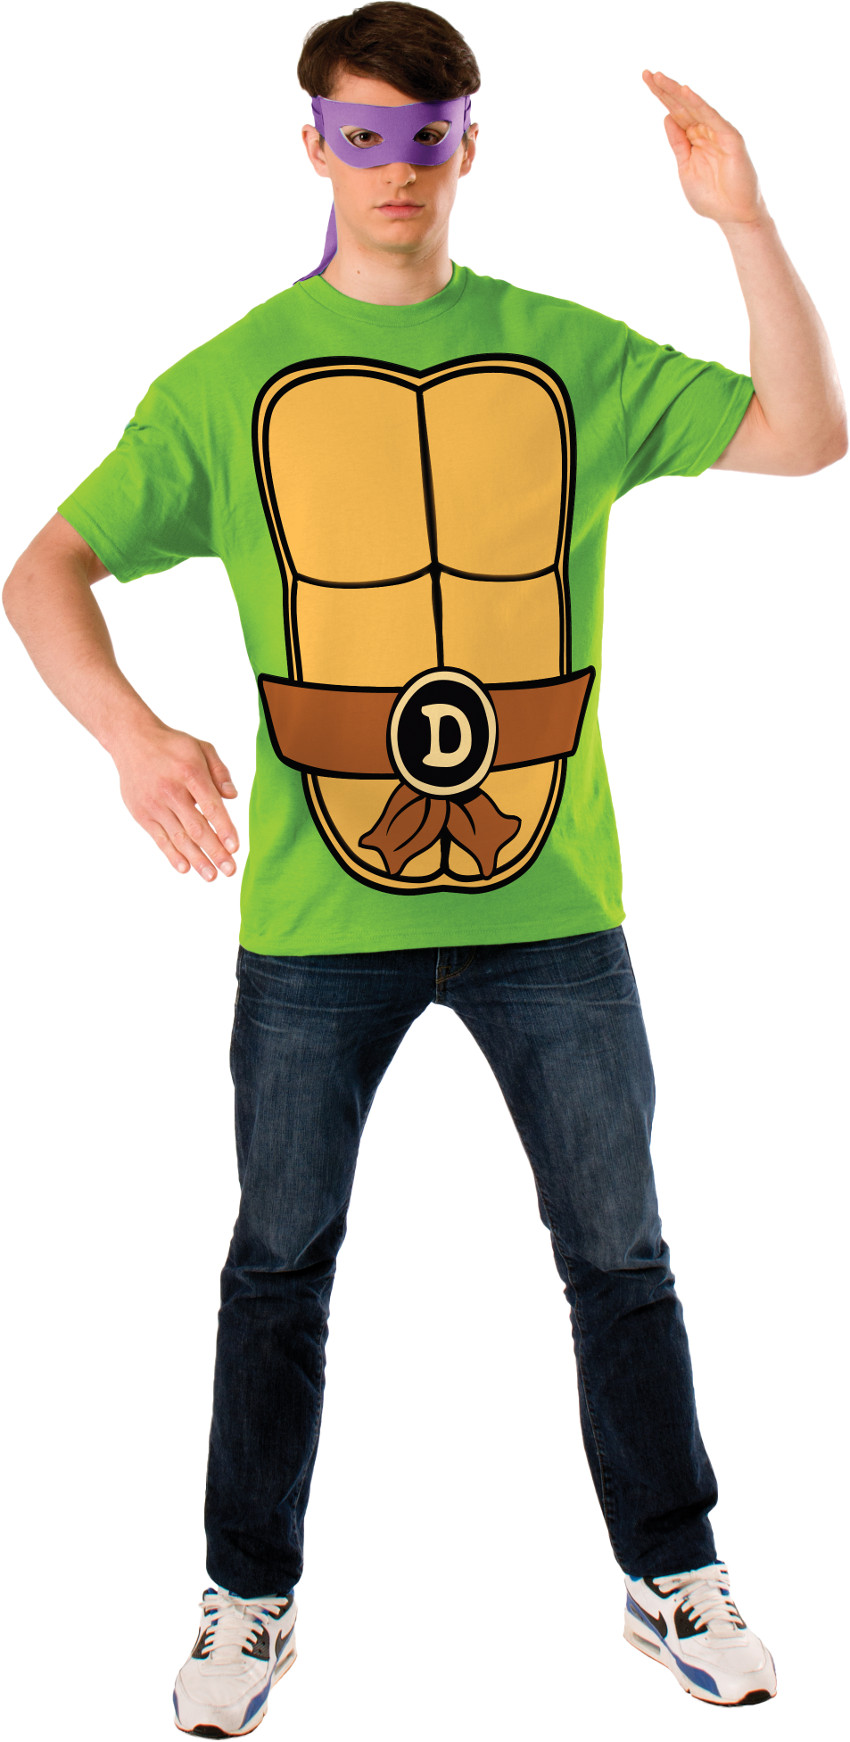 Teenage Mutant Ninja Turtles Donatello Mens T Shirt Mask Costume    Walmart.com